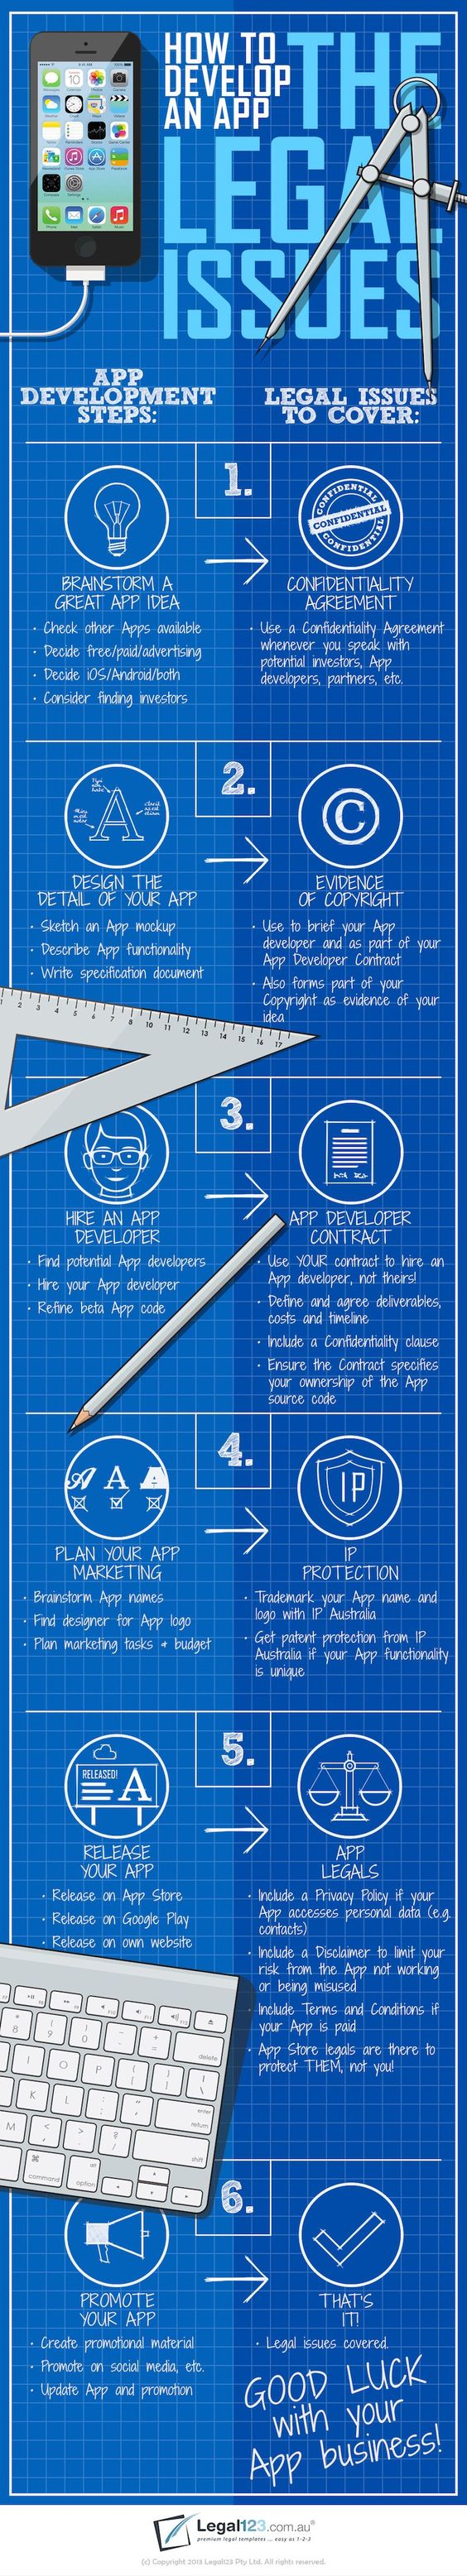 How to develop an with big considerations to the legal aspects #infographic #software